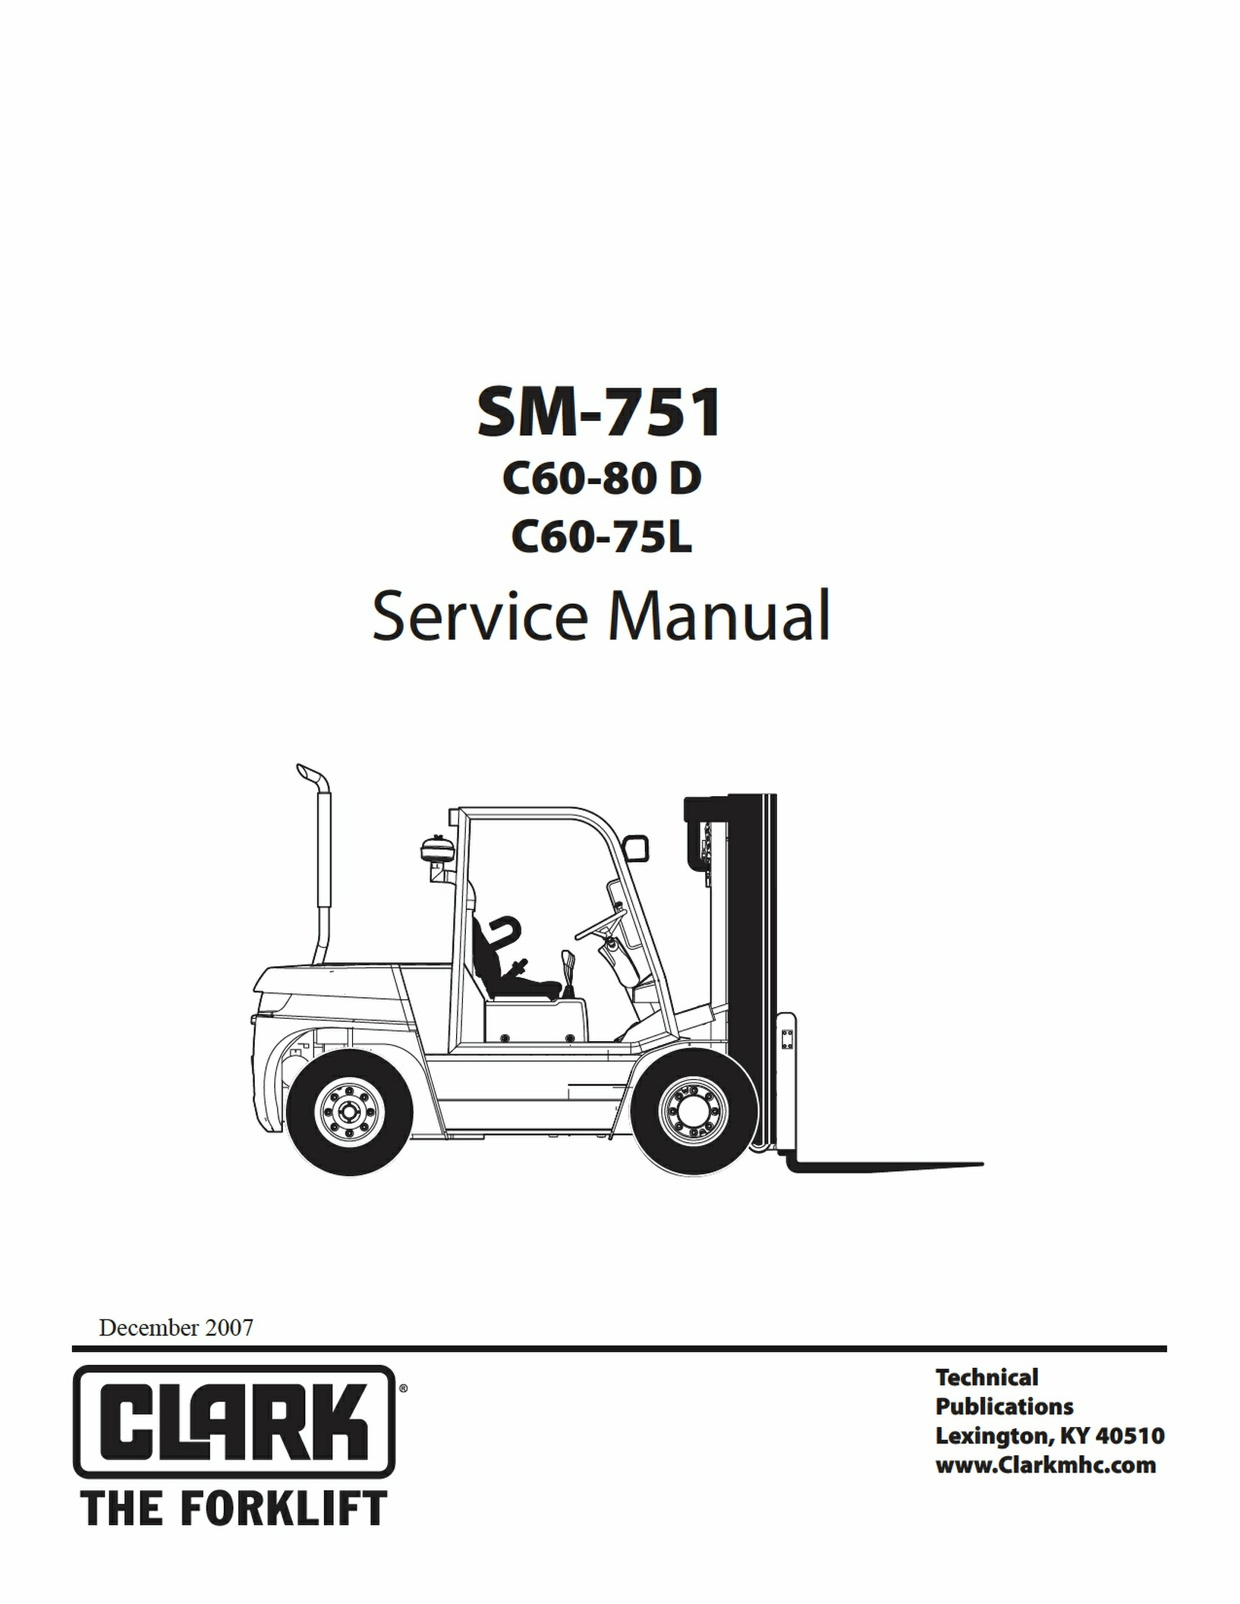 Pdf Download Clark C60-80D C60-75L Forklift Factory Service Manual